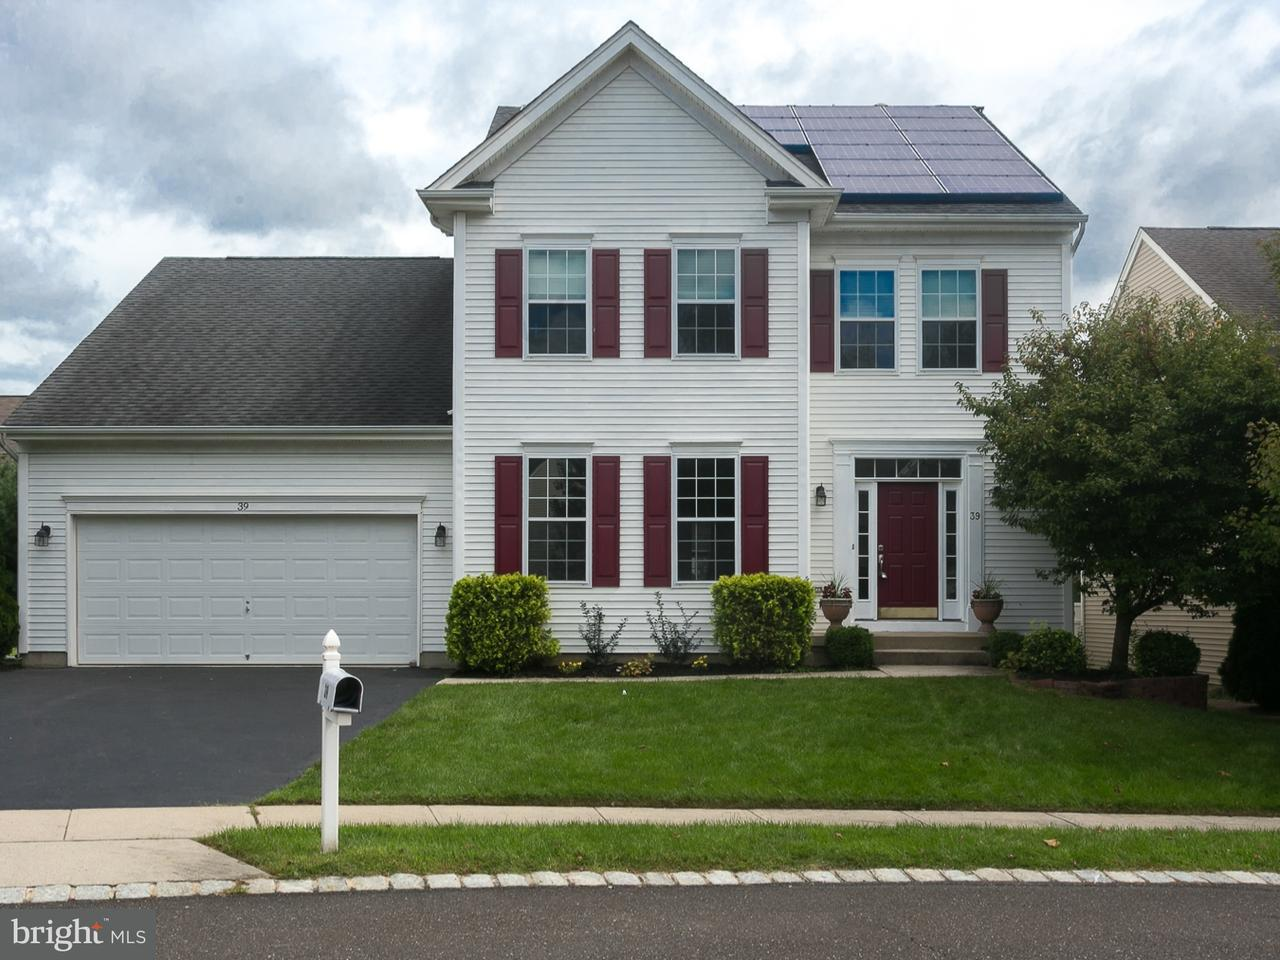 Single Family Home for Sale at 39 SAGAMORE Lane Bordentown, New Jersey 08505 United States